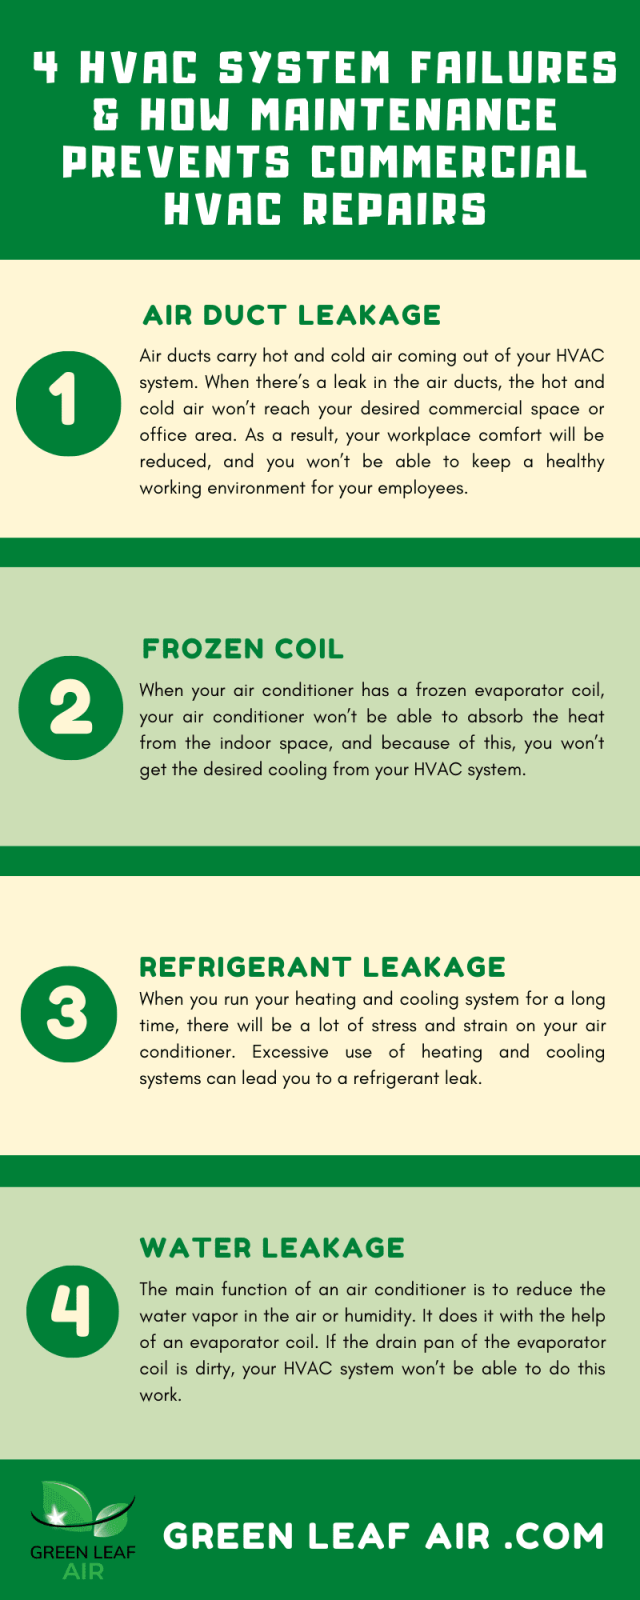 4 HVAC System Failures & How Maintenance Prevents Costly Commercial HVAC Repairs